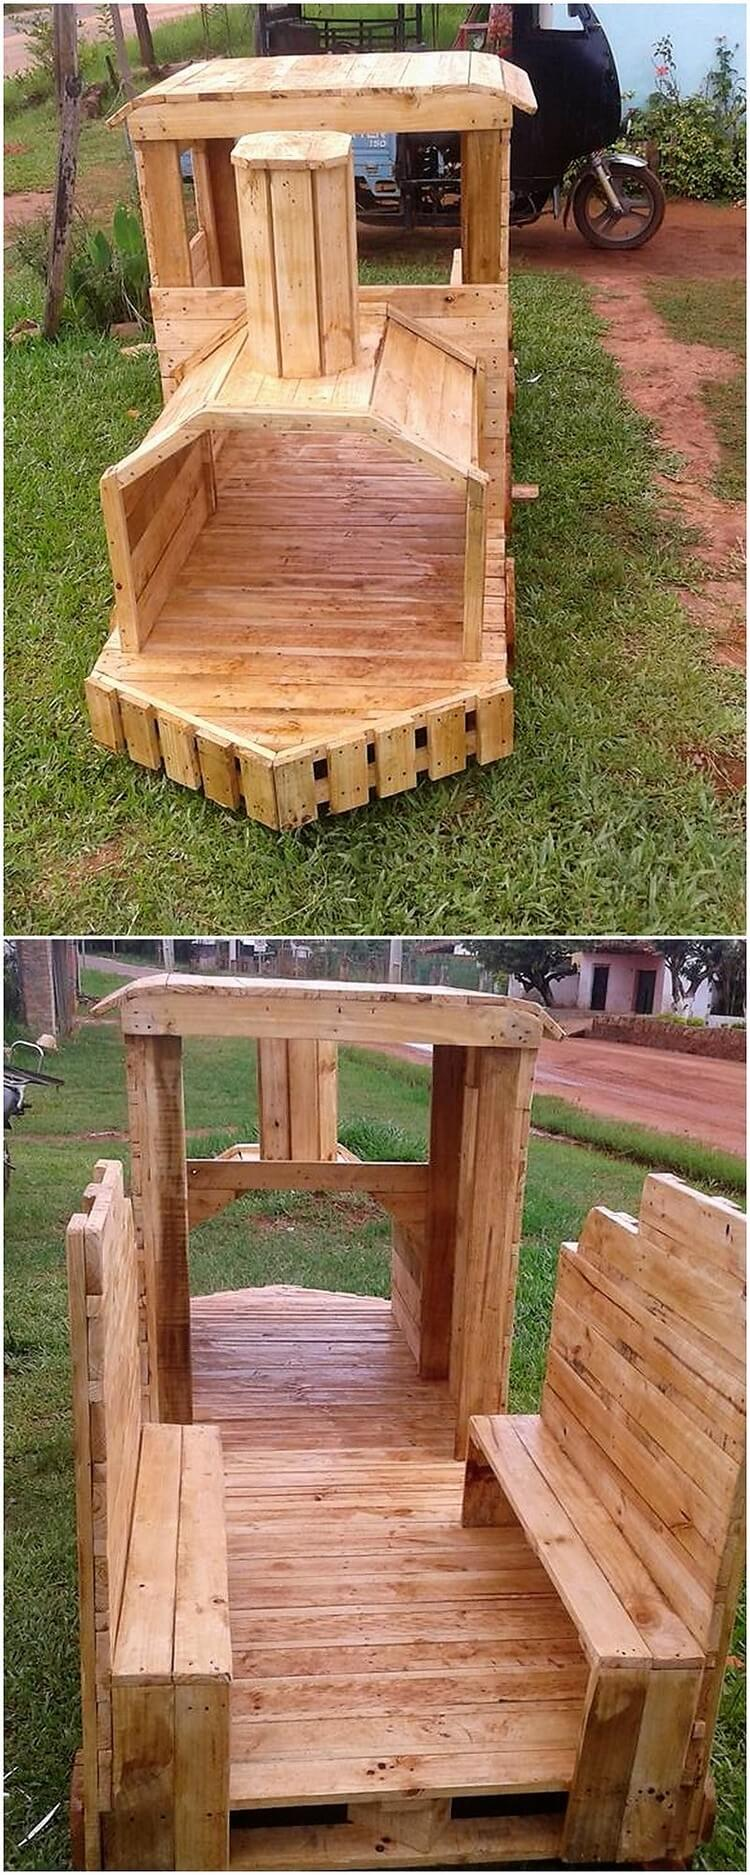 splendid diy recycled wood pallet creations pallet wood projects. Black Bedroom Furniture Sets. Home Design Ideas